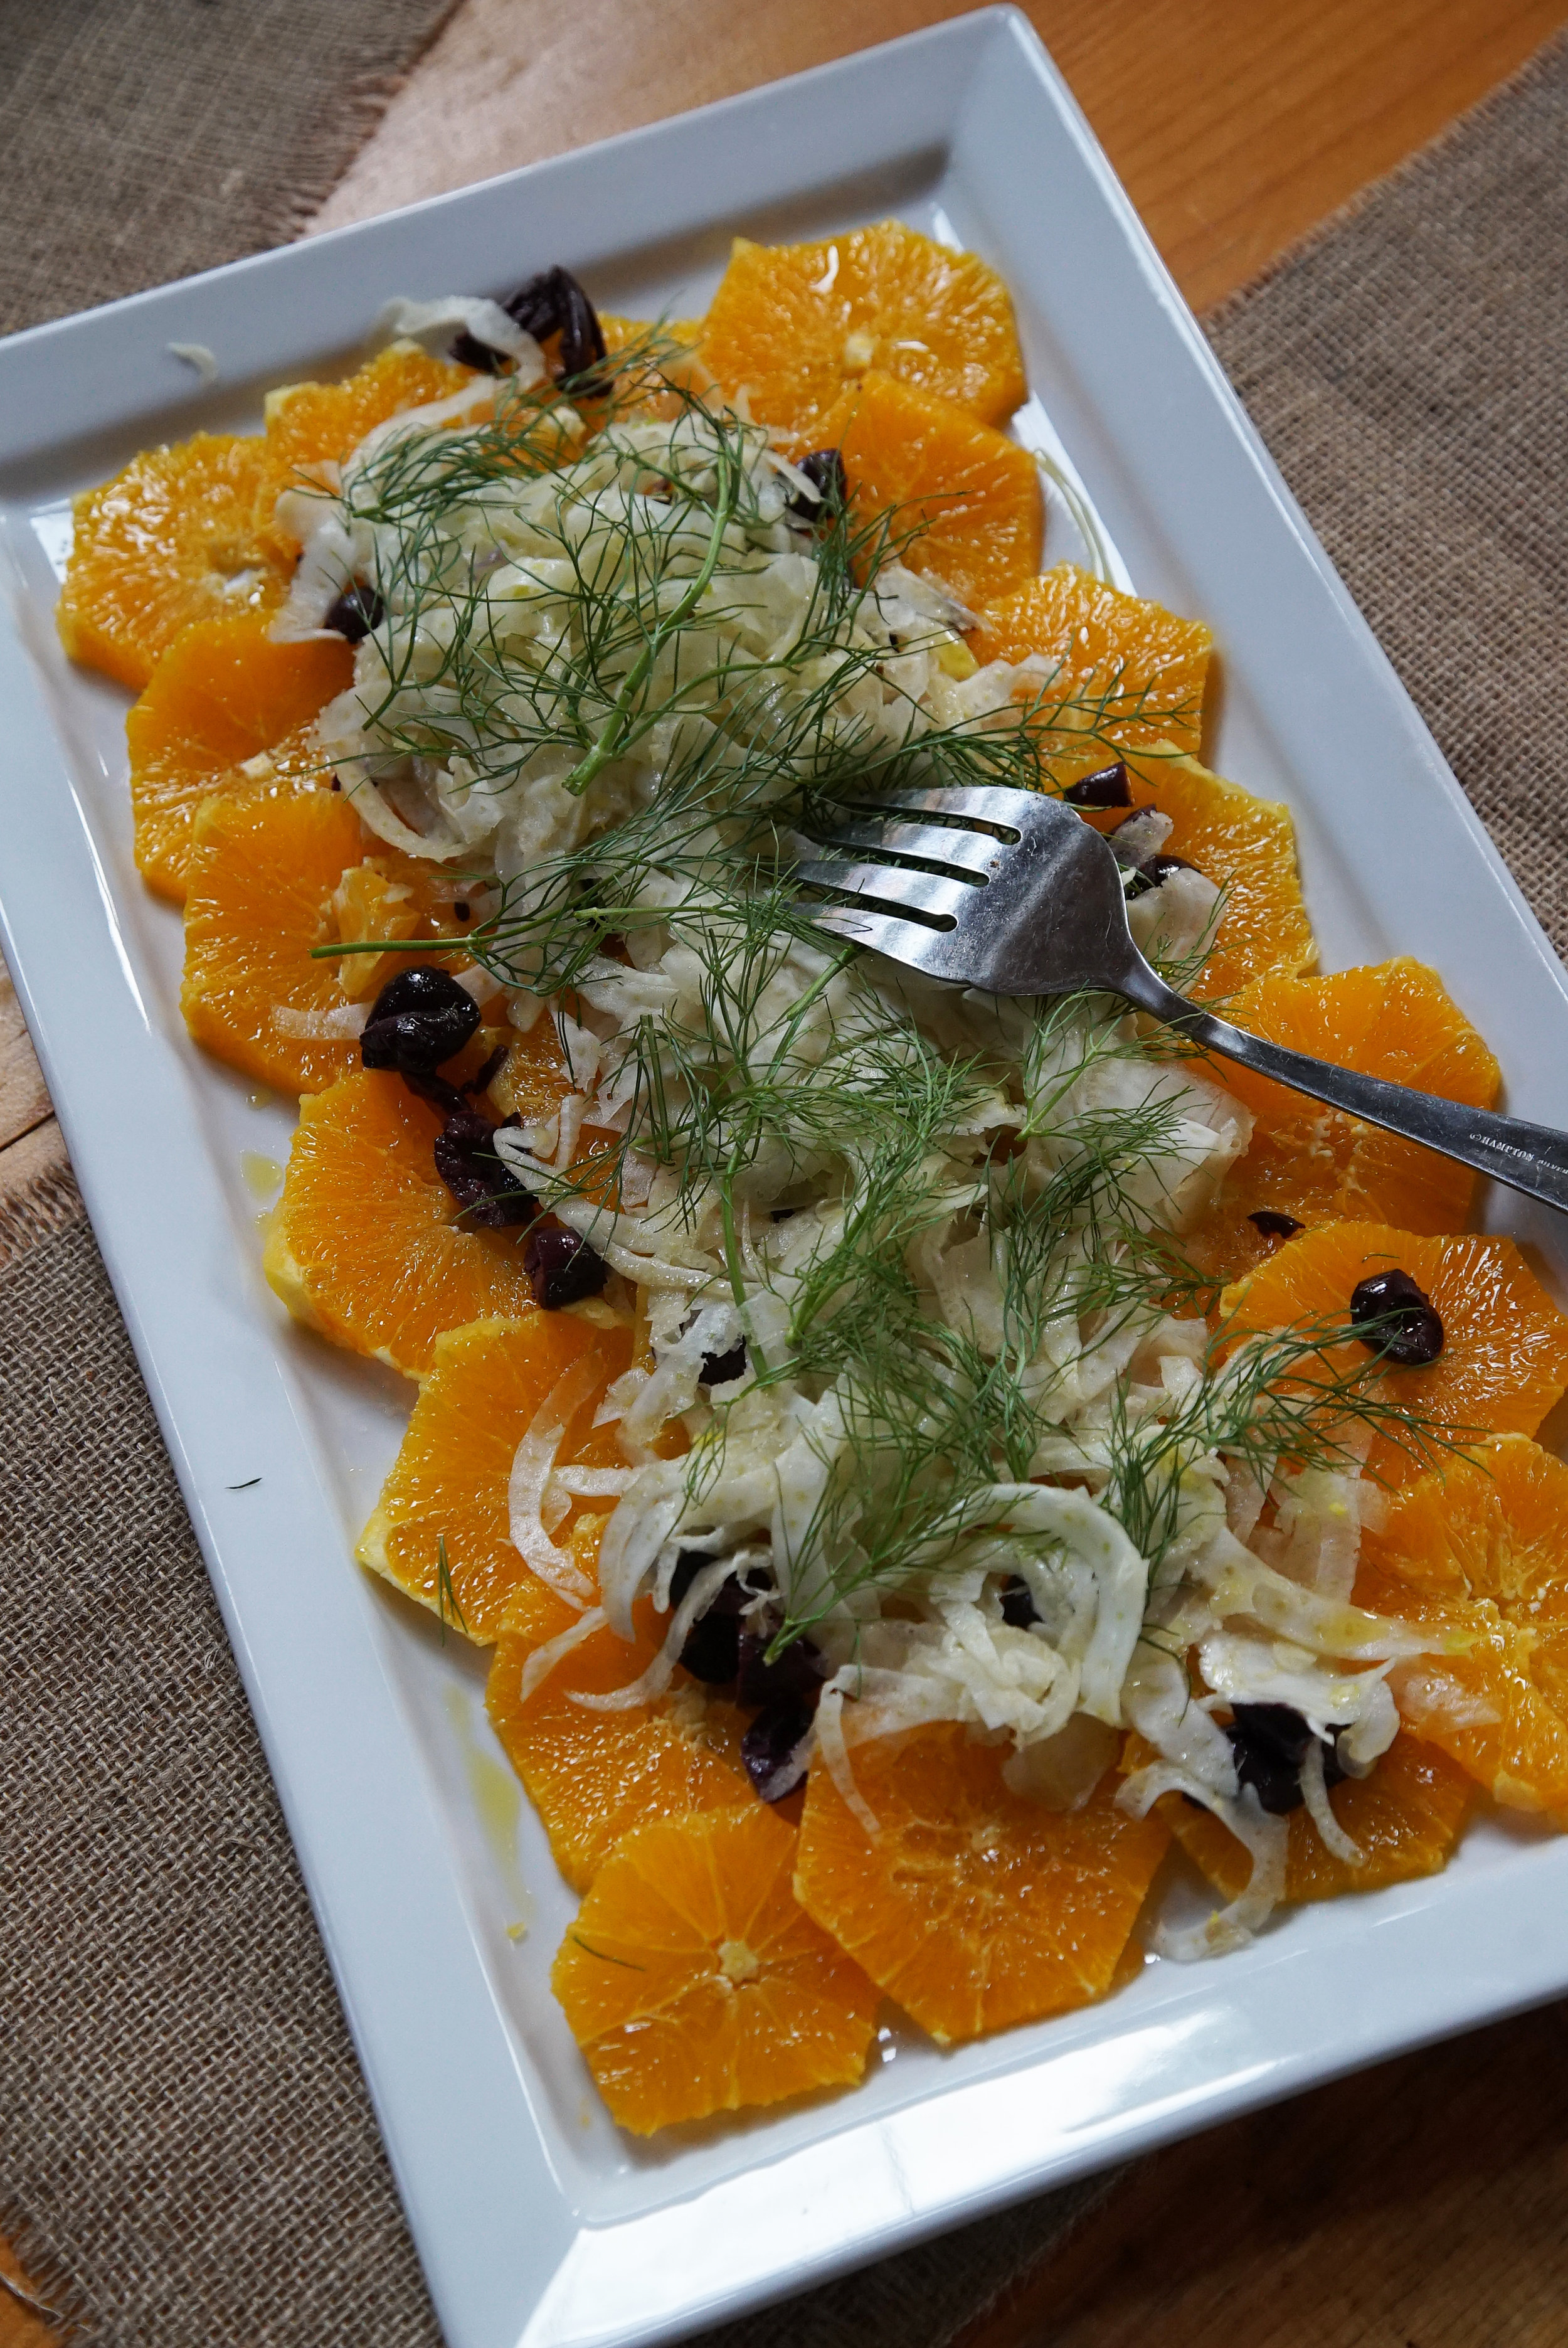 Orange, fennel, and black olive salad